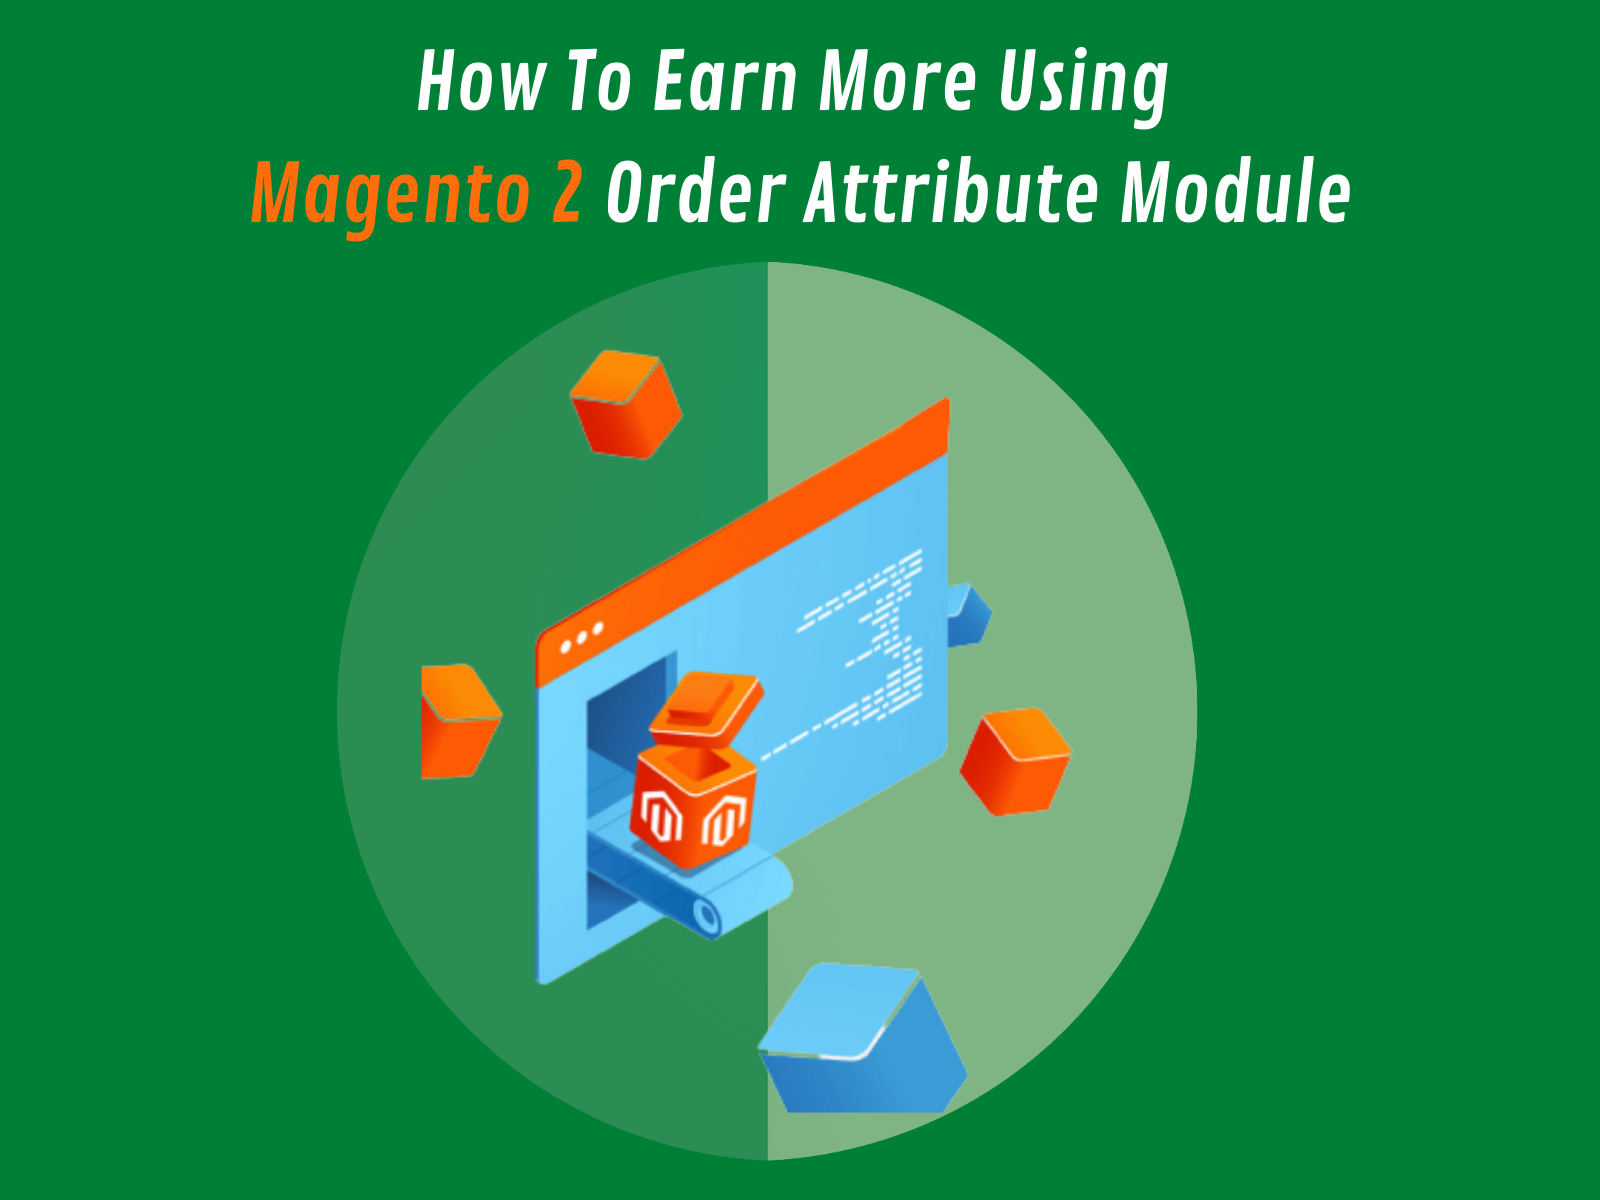 How To Earn More Using Magento 2 Order Attribute Module